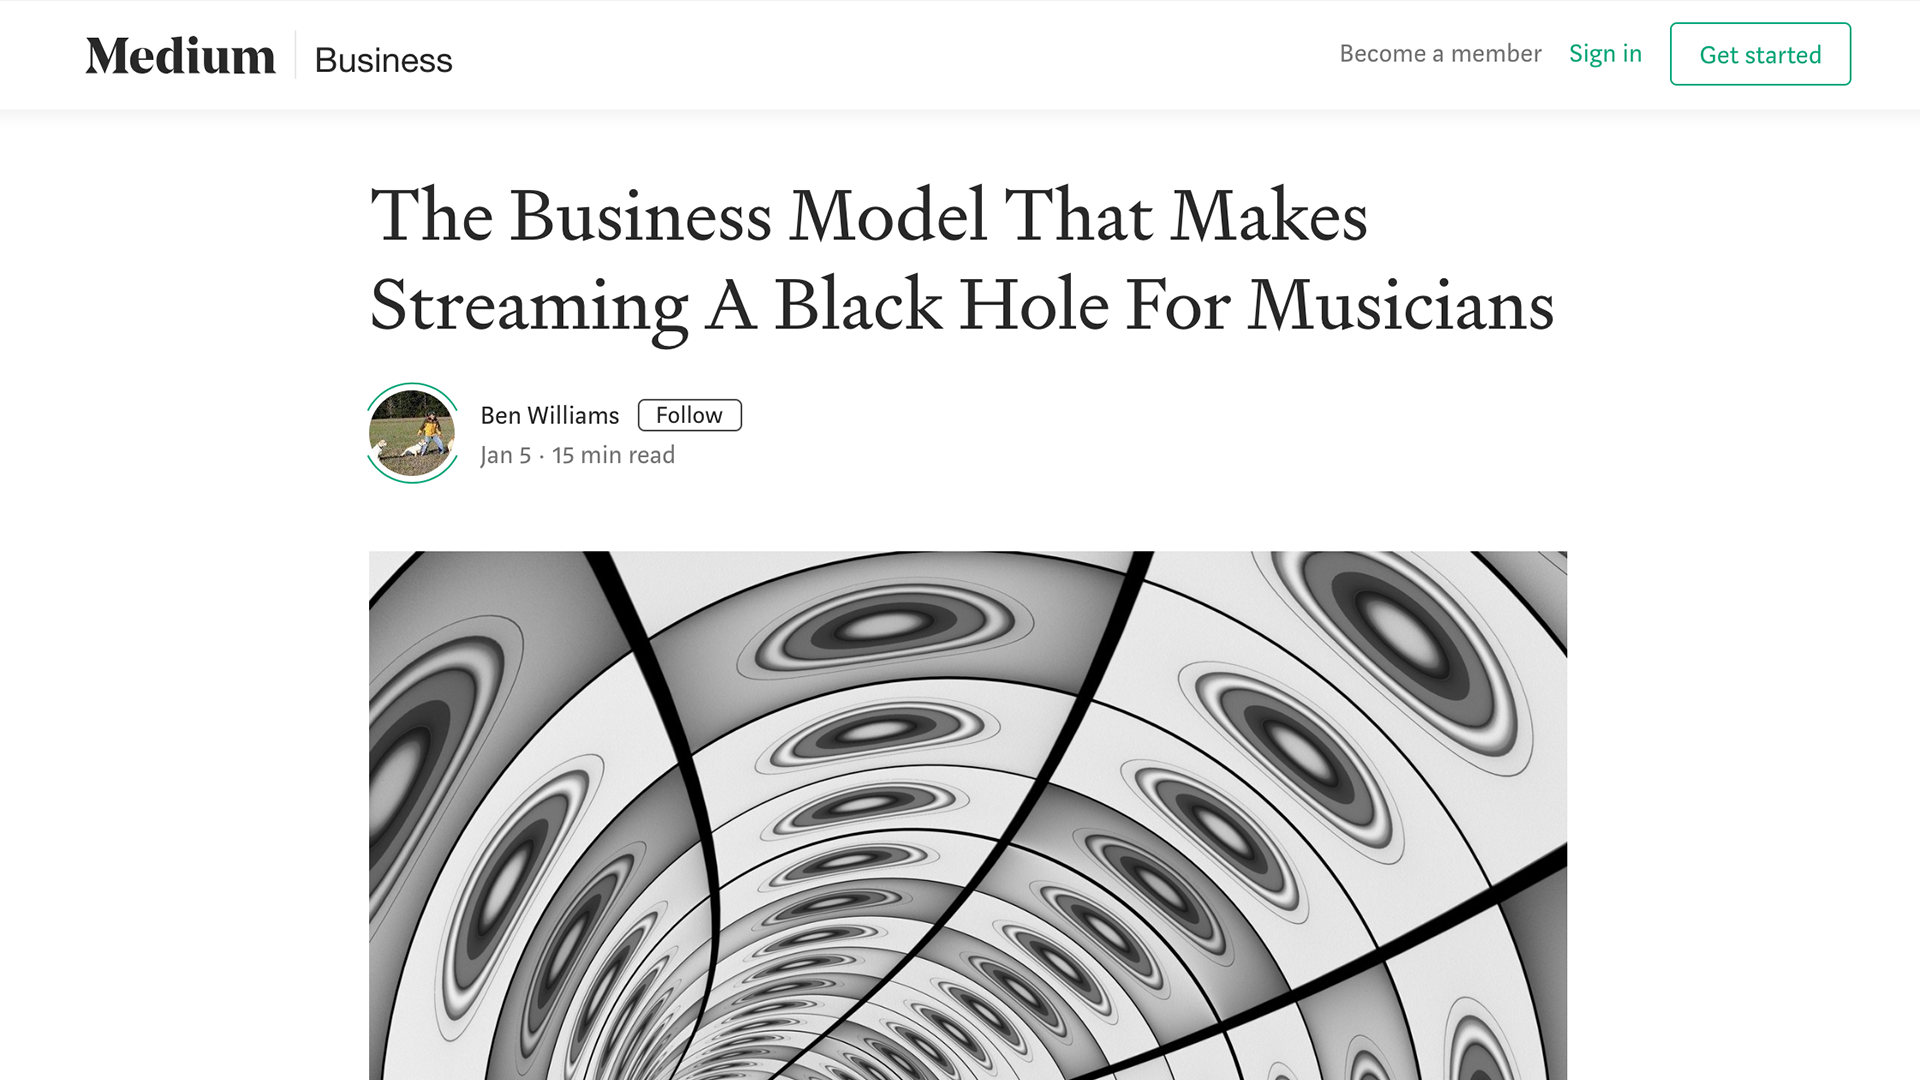 Fairness Rocks News The Business Model That Makes Streaming A Black Hole For Musicians